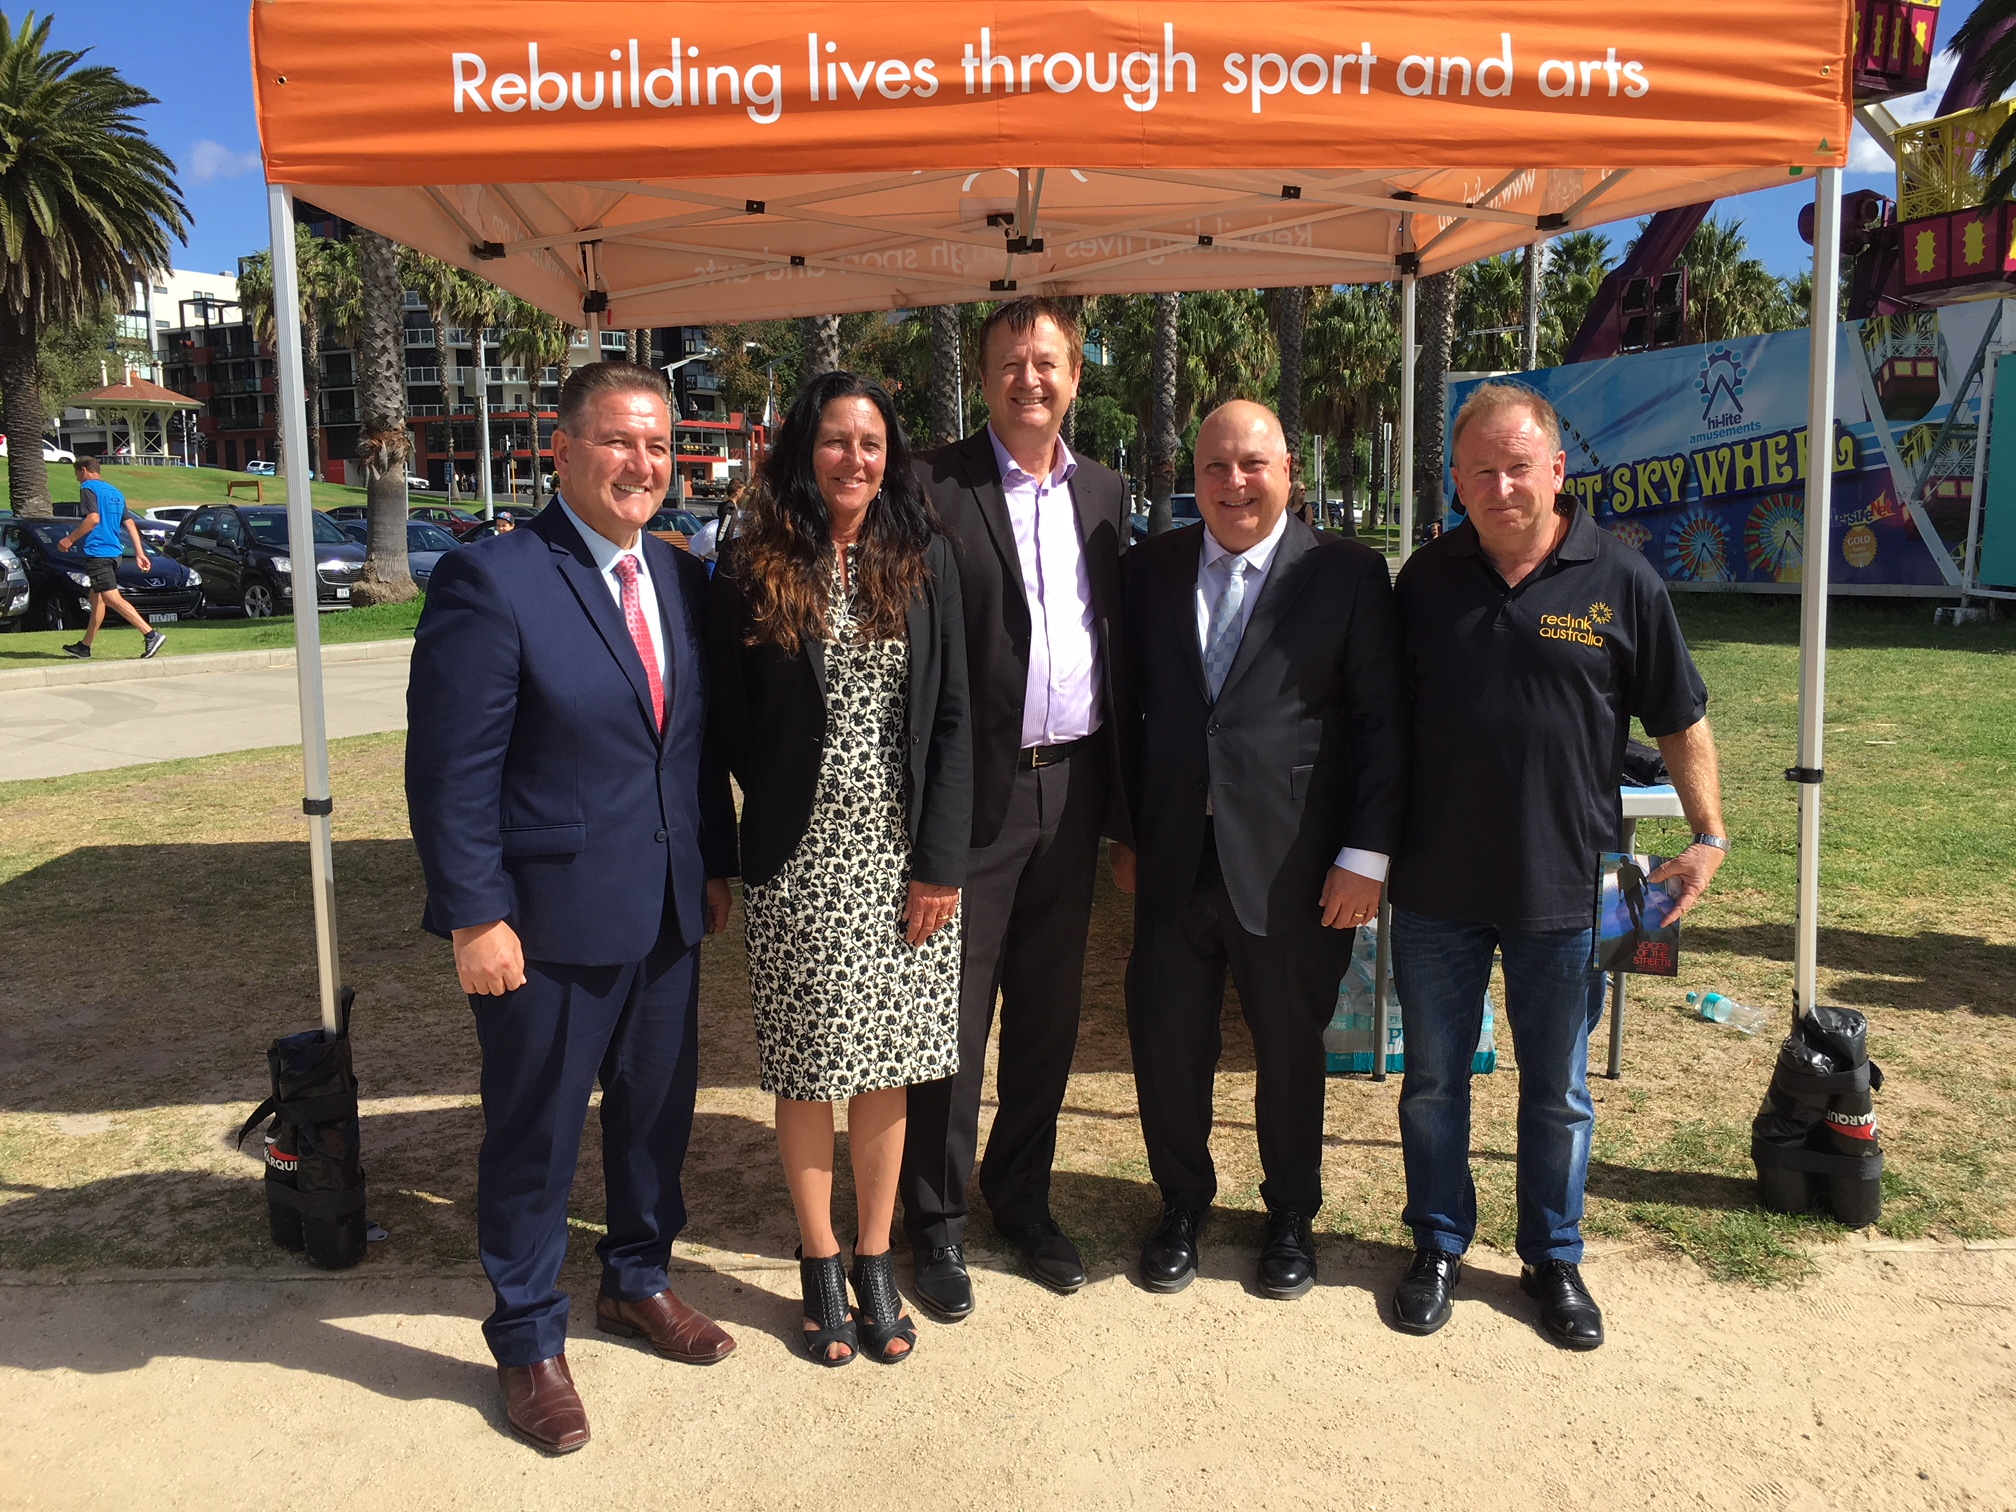 John Eren MP, Tim Pallas MP, Christine Couzens MP, Peter Cullen Reclink Founder & John Ballis Reclink CEO